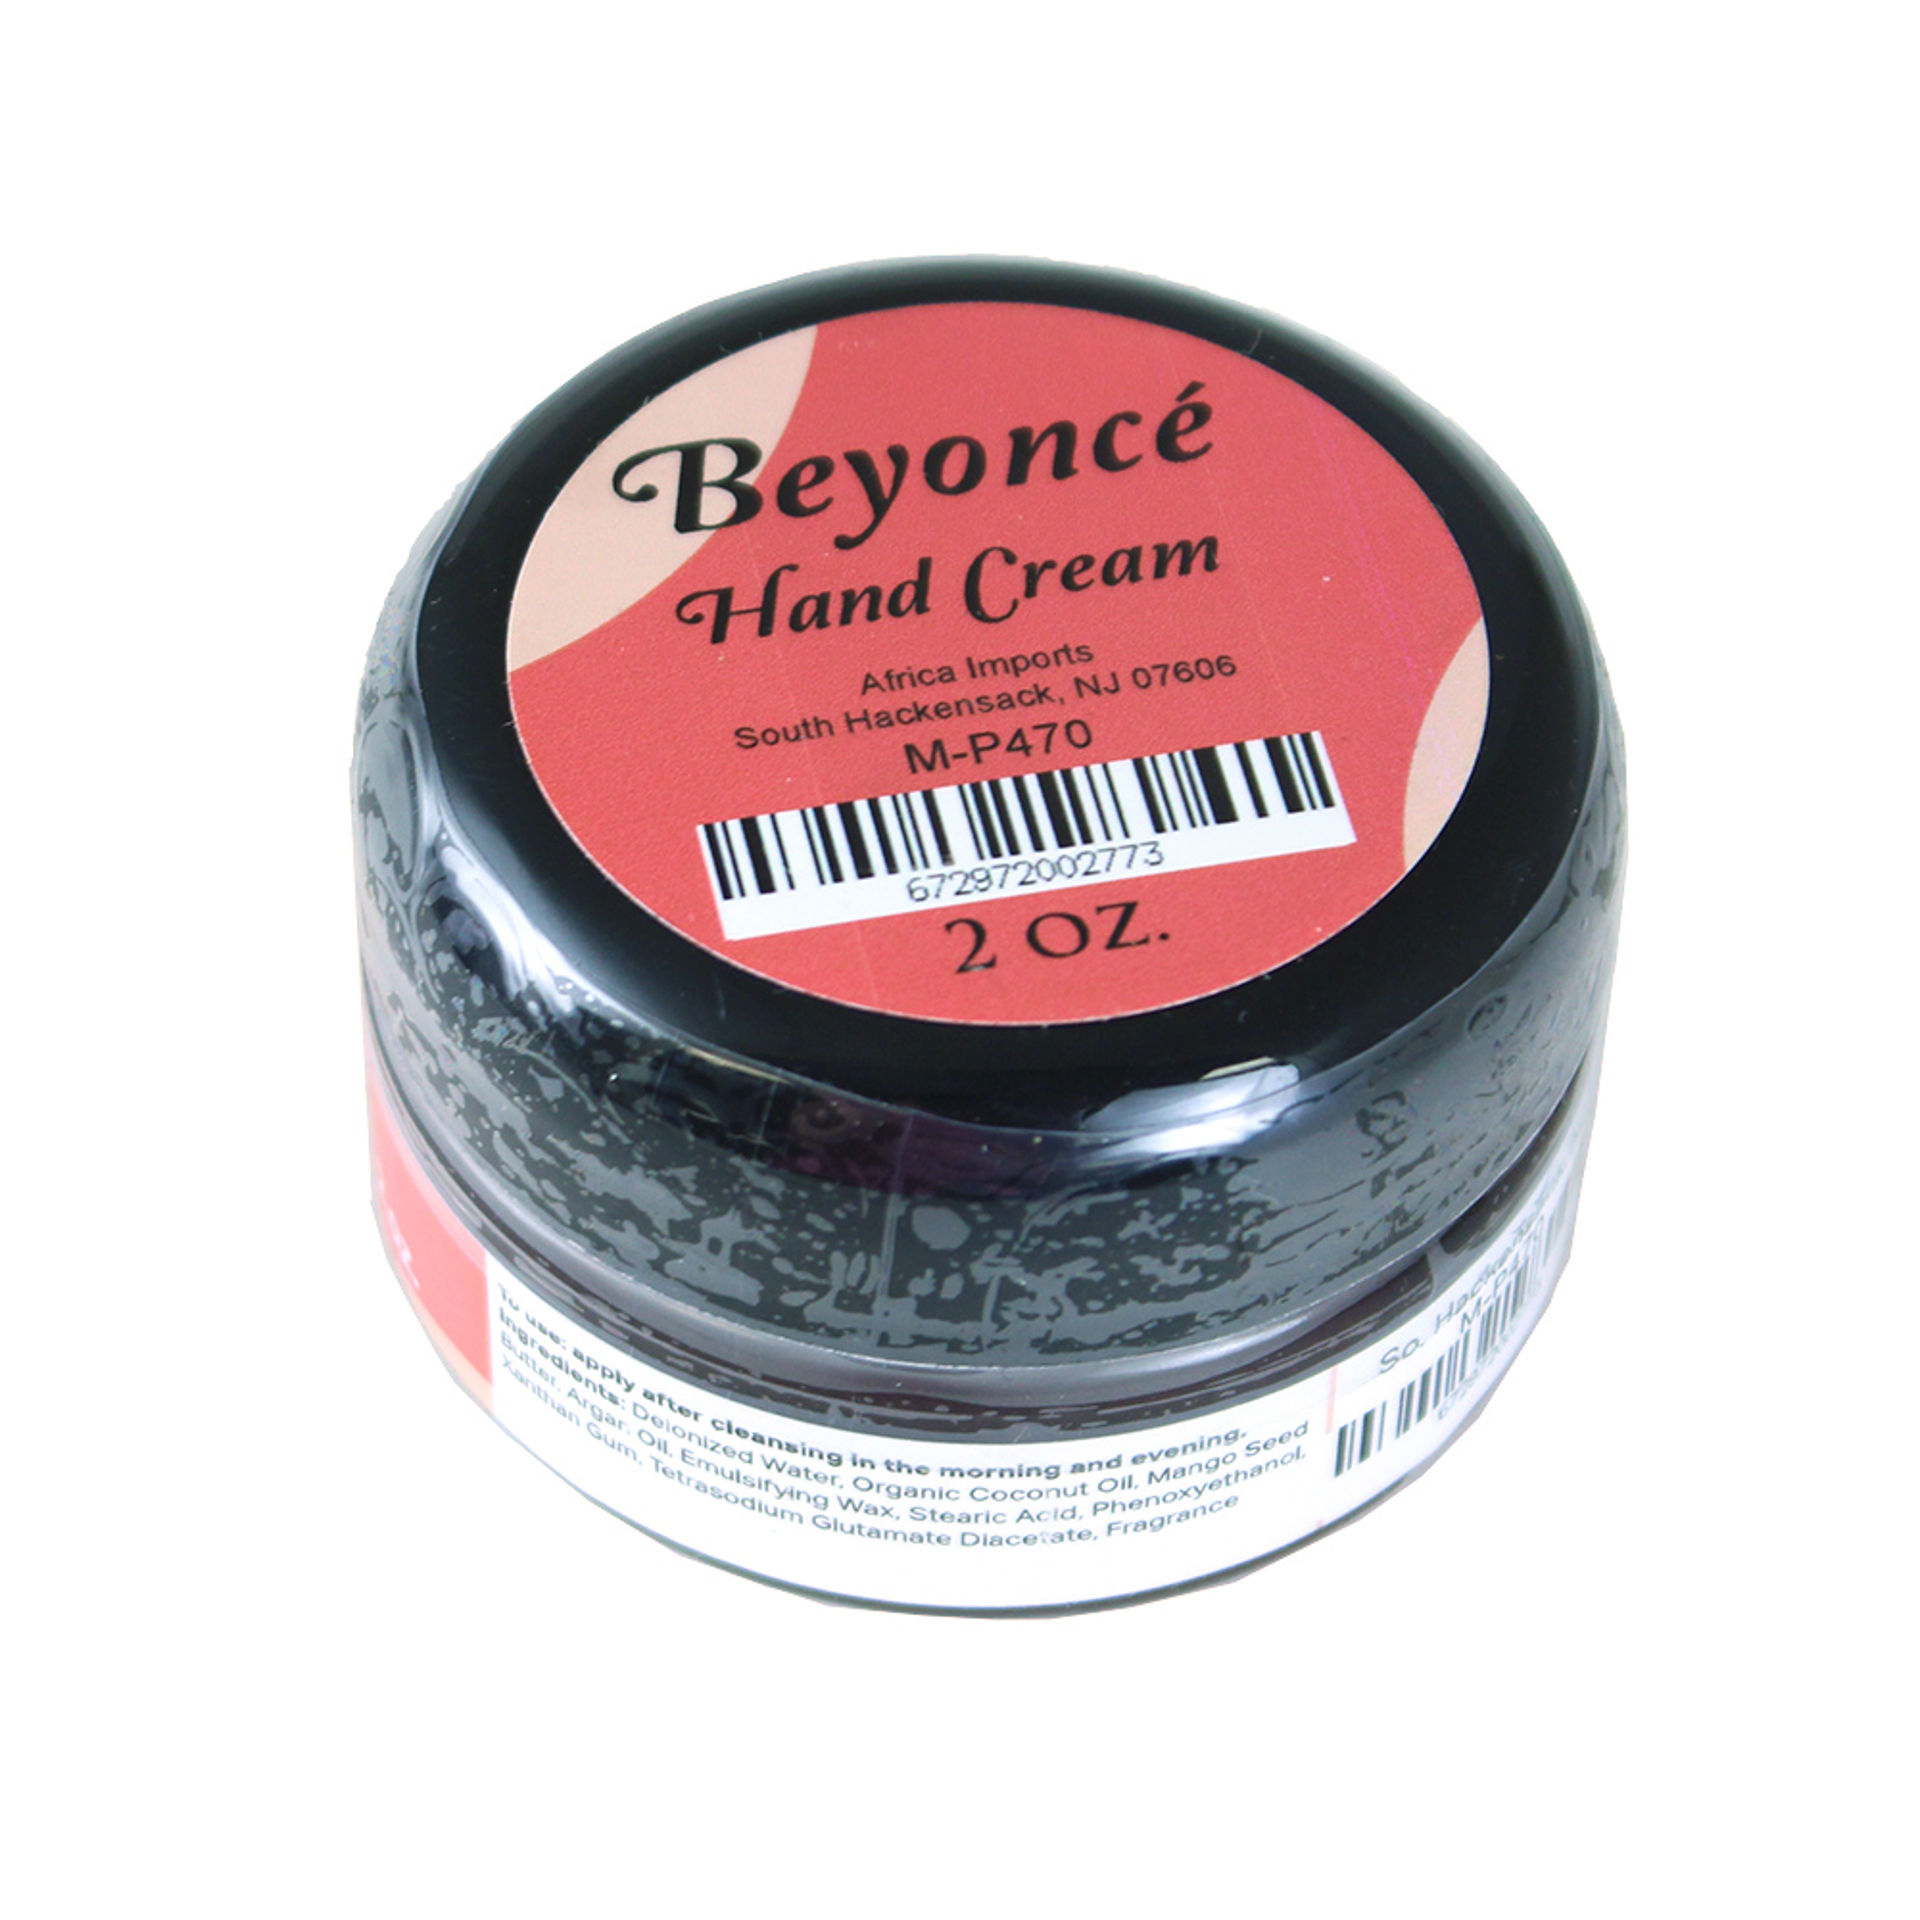 Picture of Beyoncé Hand Cream - 2 oz.